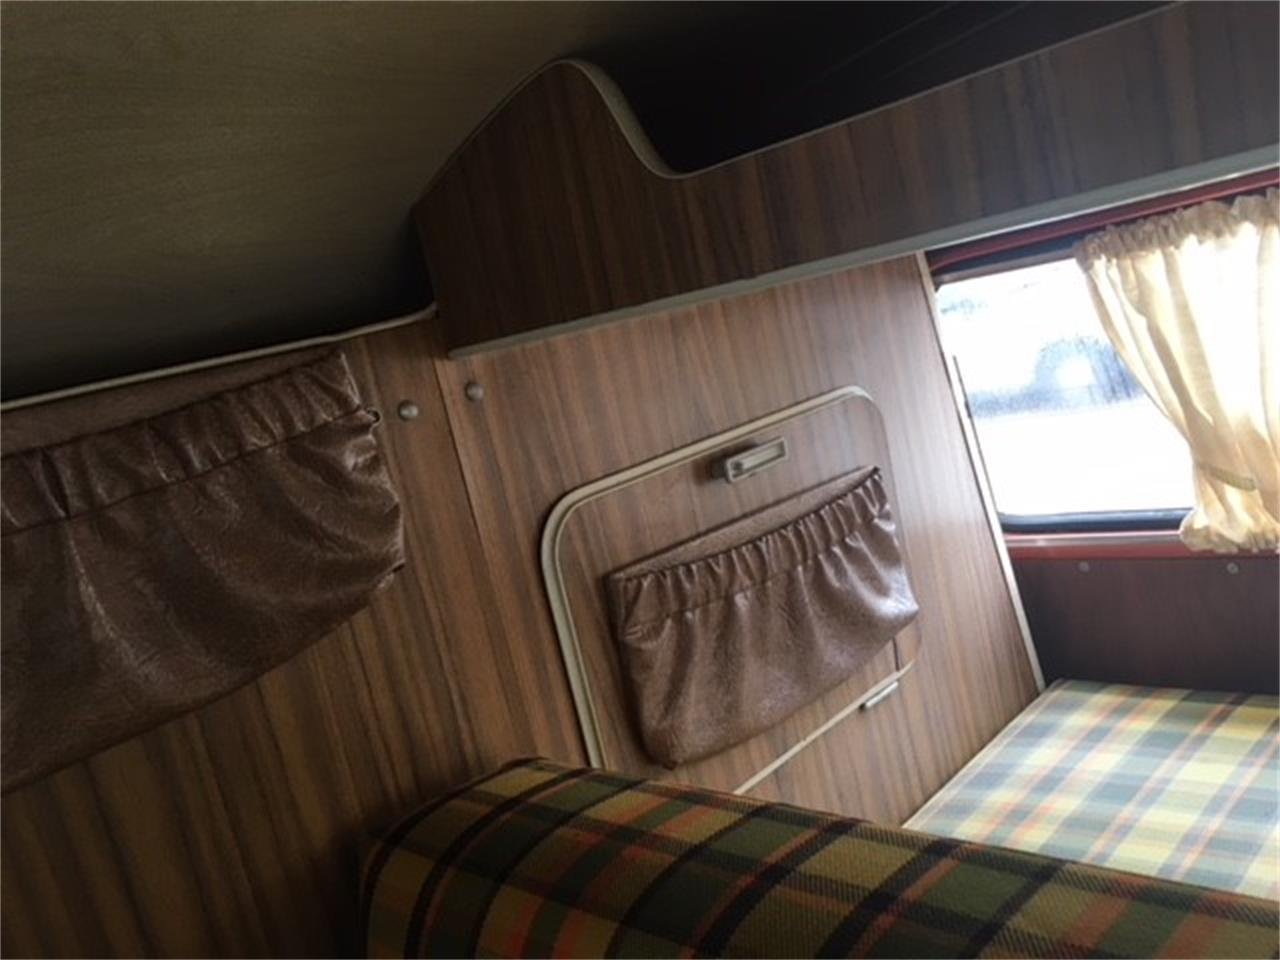 Large Picture of Classic 1973 Westfalia Camper - $20,000.00 Offered by a Private Seller - MTC1